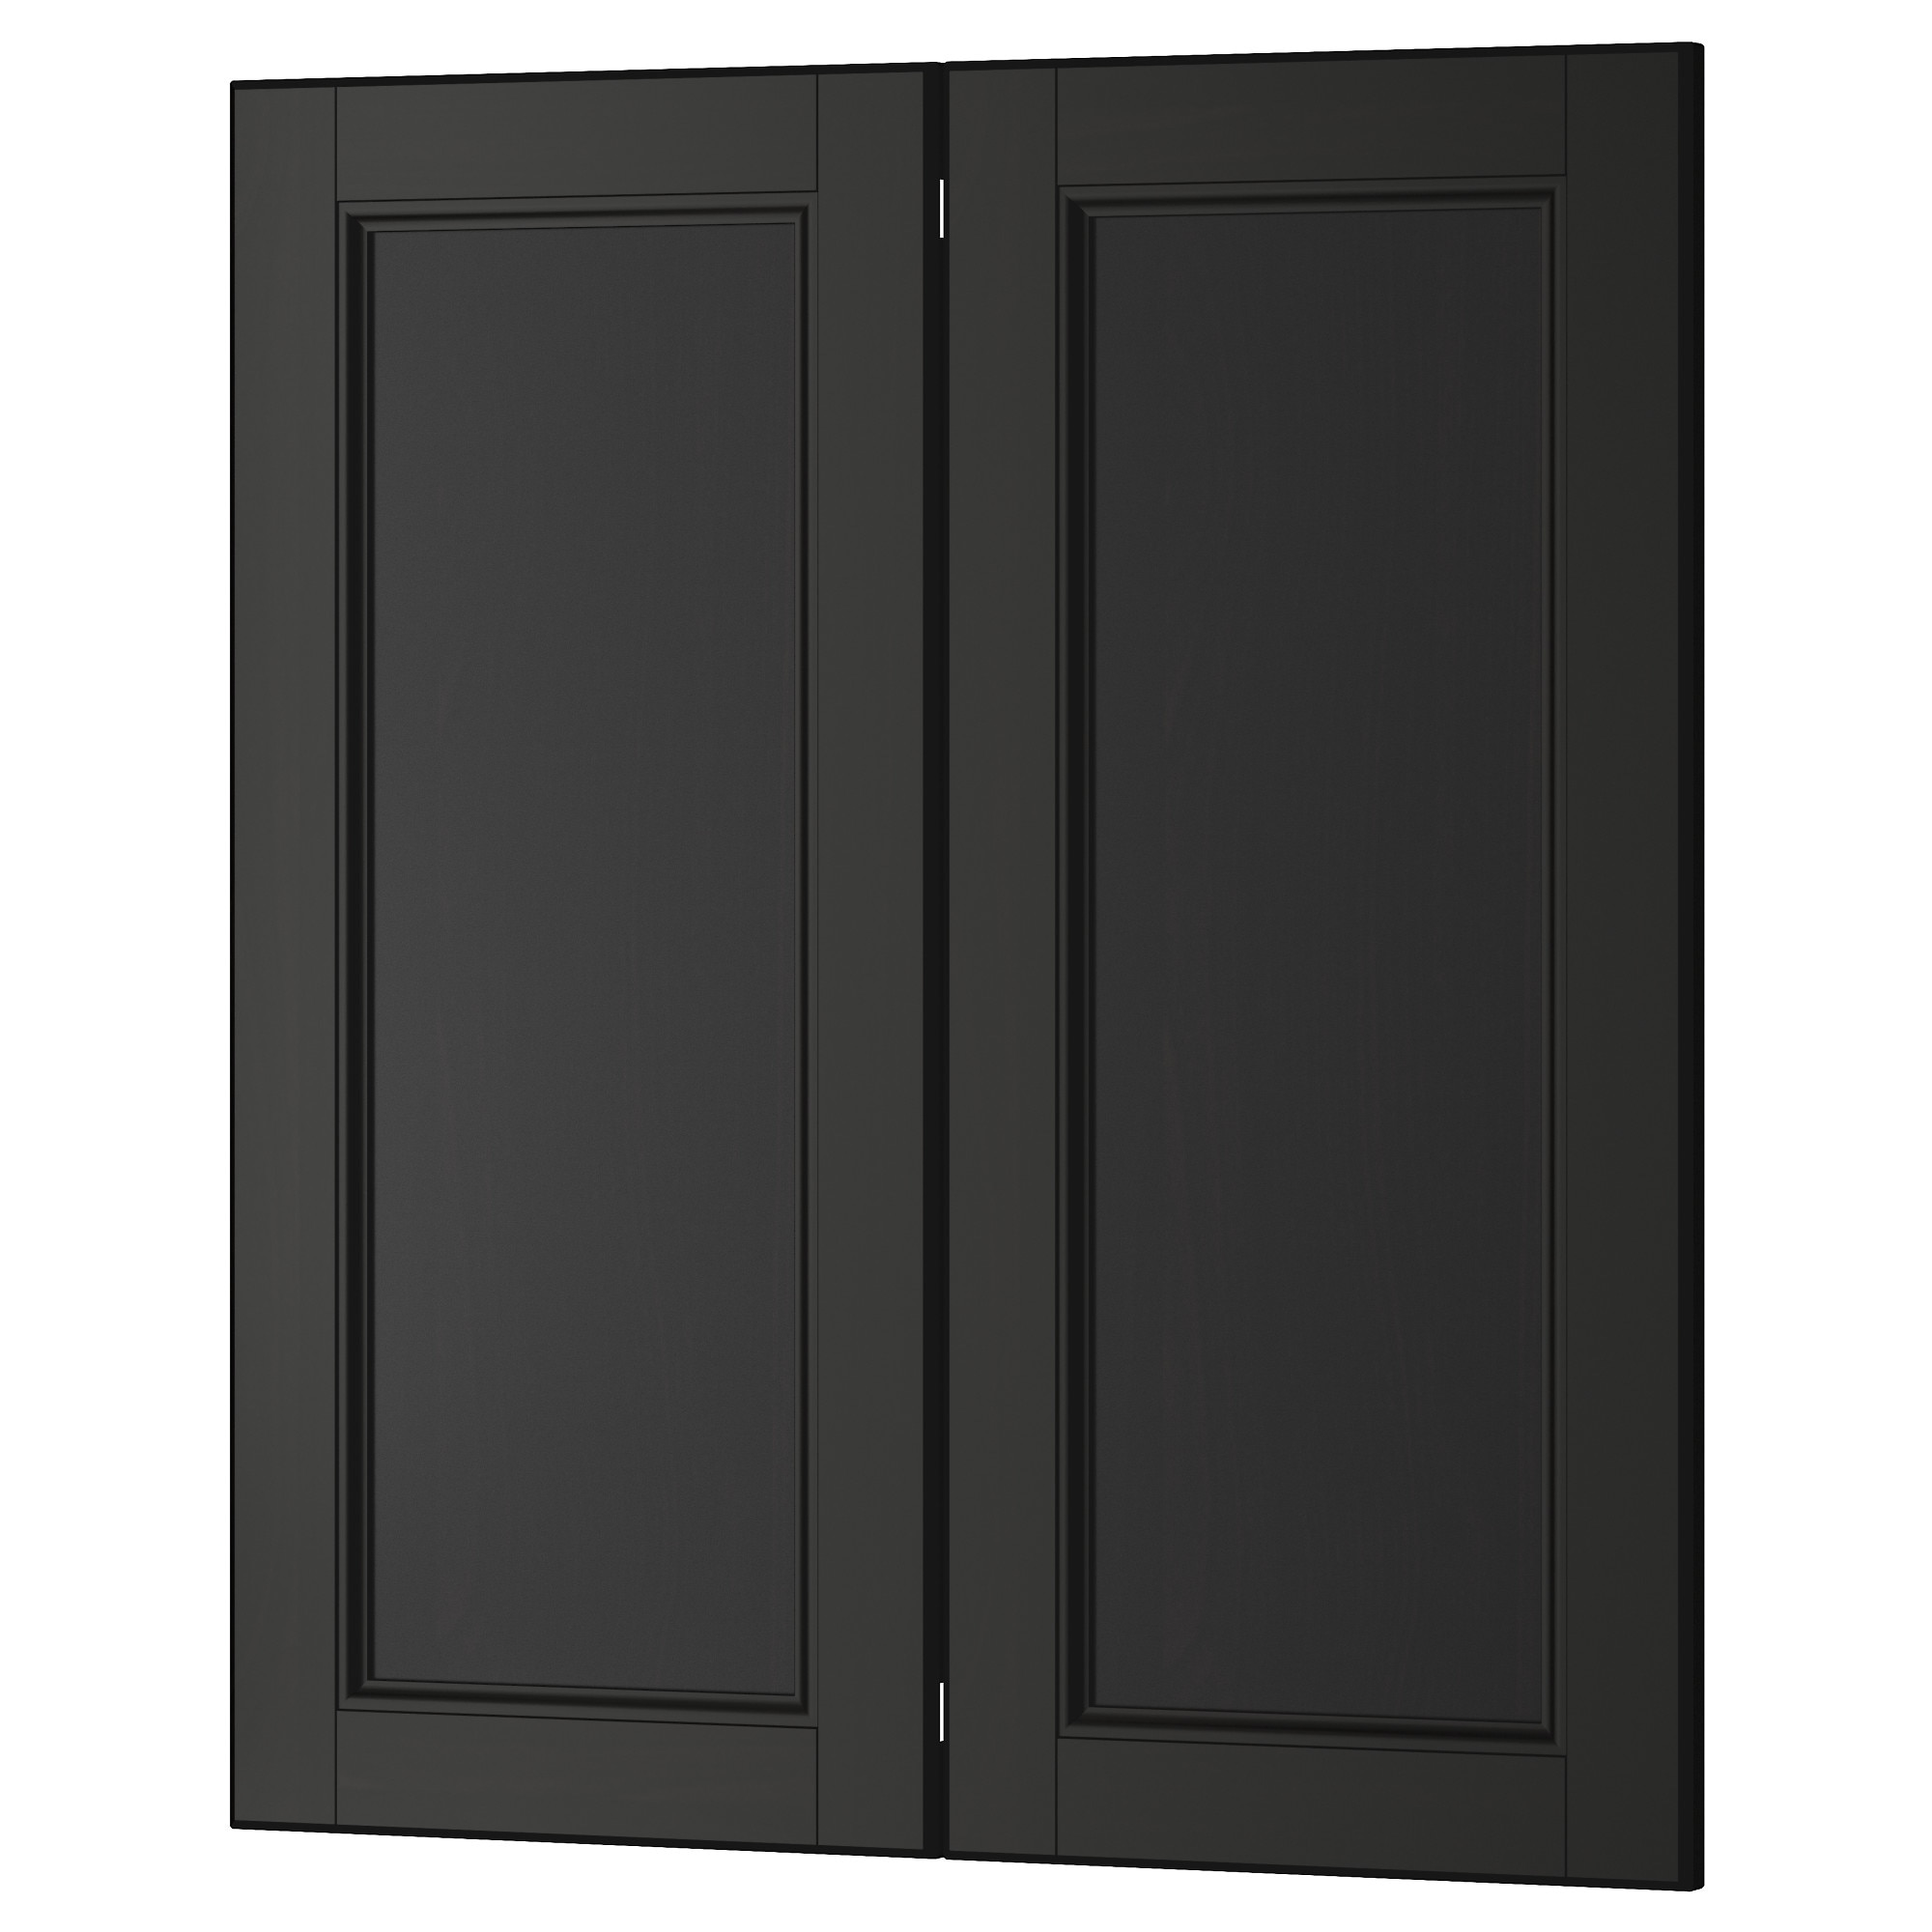 LAXARBY 2-p door/corner base cabinet set black-brown Width: